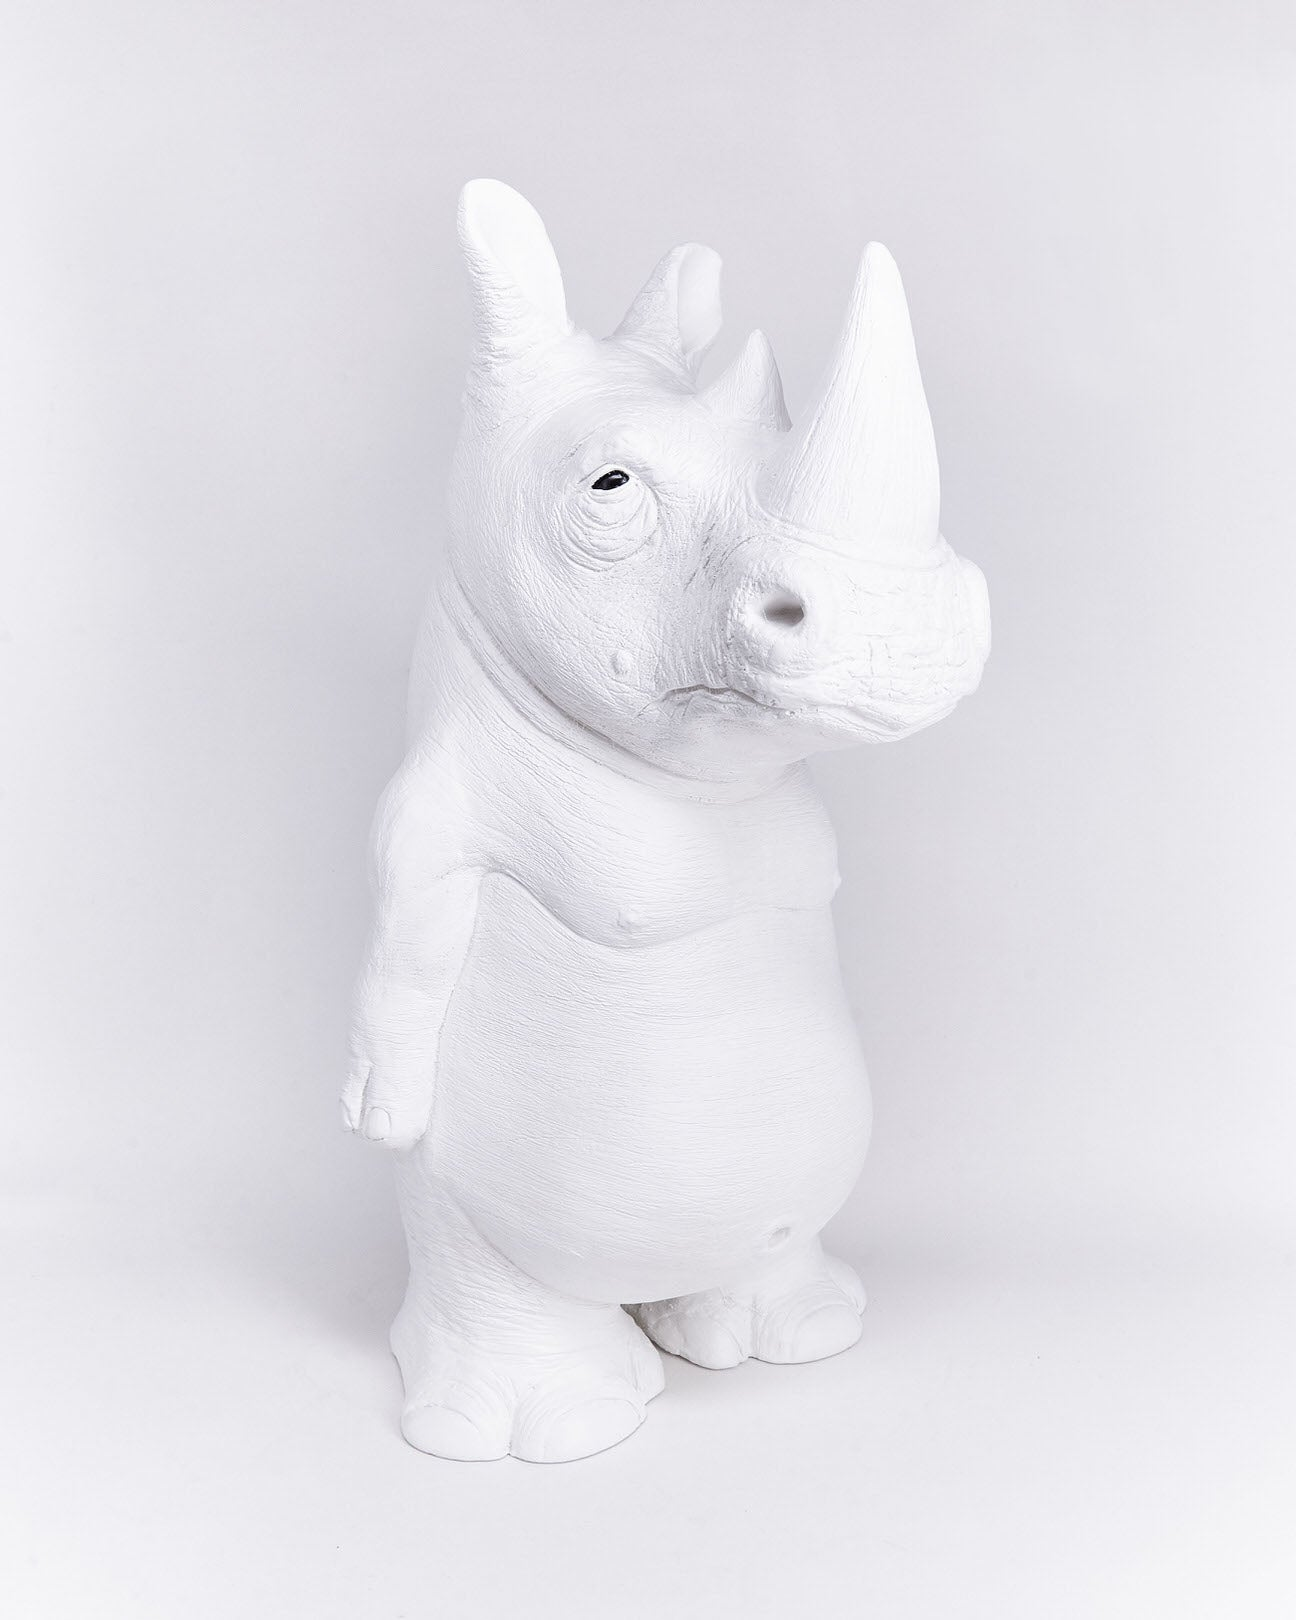 Rhino-ceramic-animal-object-right-handmade-Ornamante-localdesigner-Nuovum-barcelona